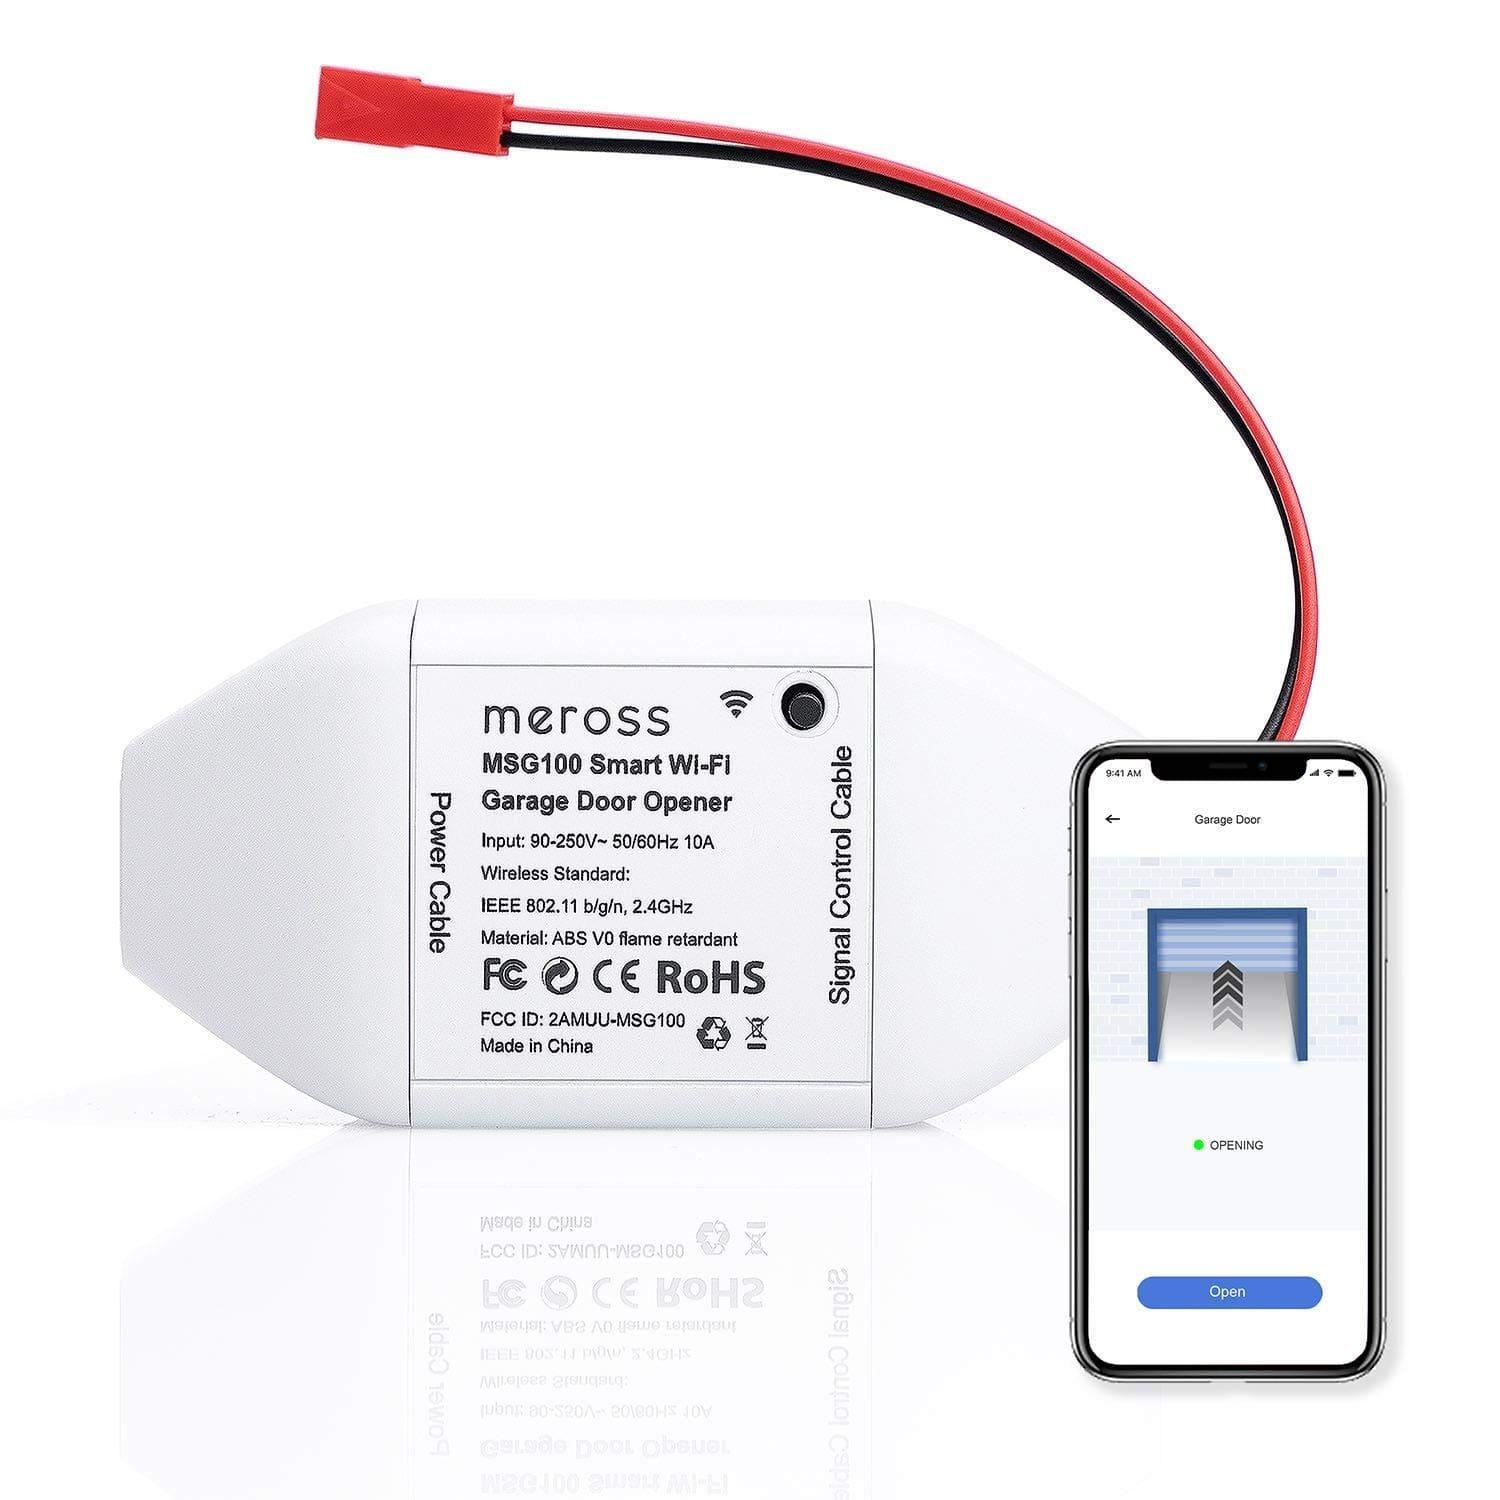 Meross Smart Wi-Fi Garage Door Opener Remote w/ App Control